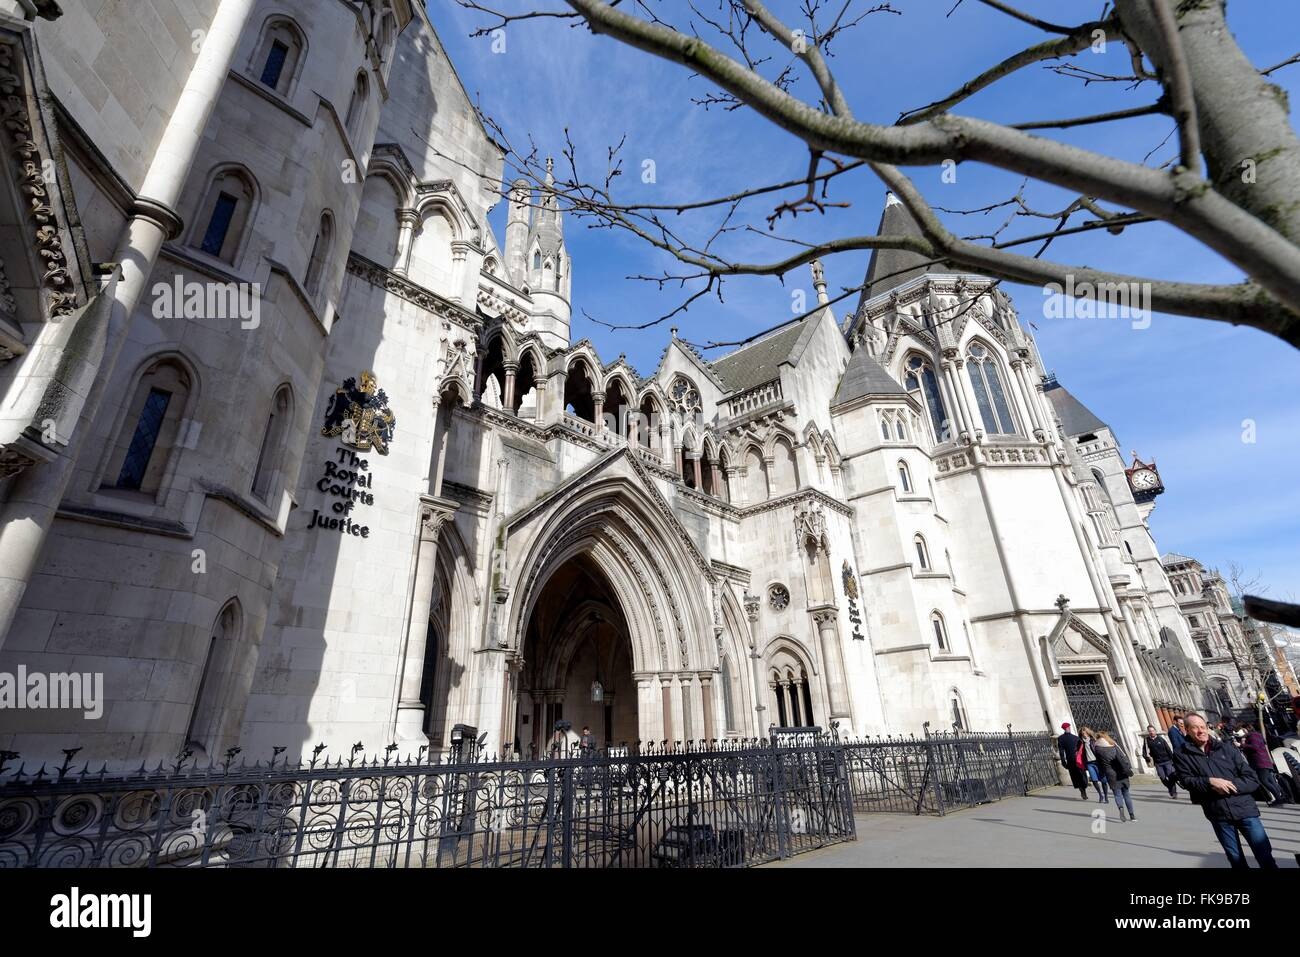 Exterior of The Royal Courts of Justice London U.K. - Stock Image